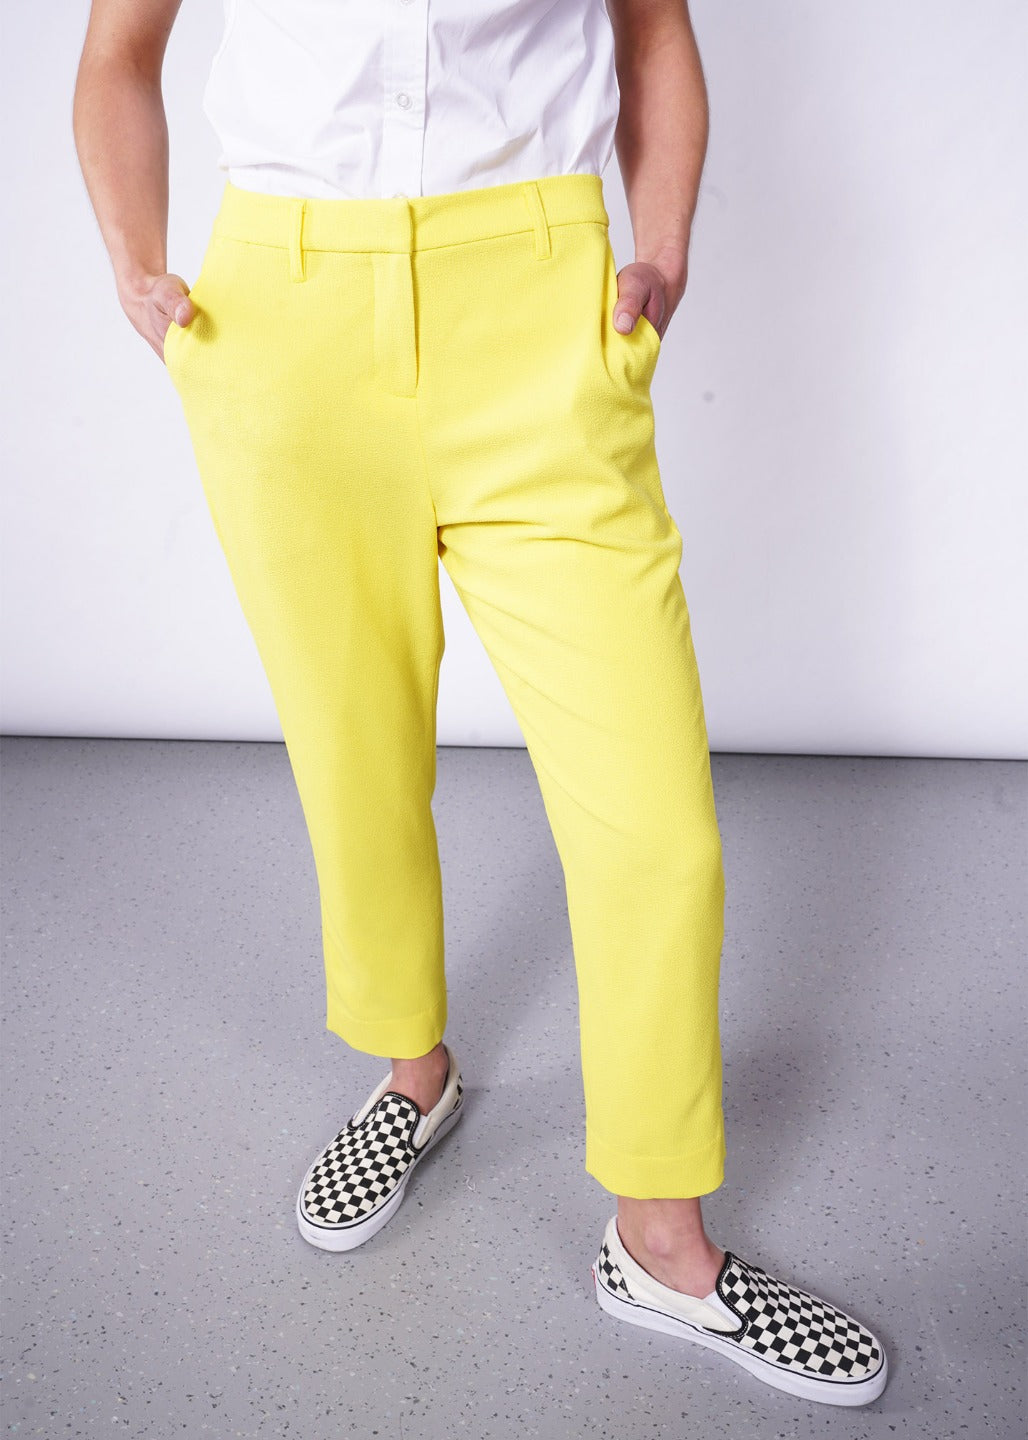 The Empower Crepe Slim Crop Pant